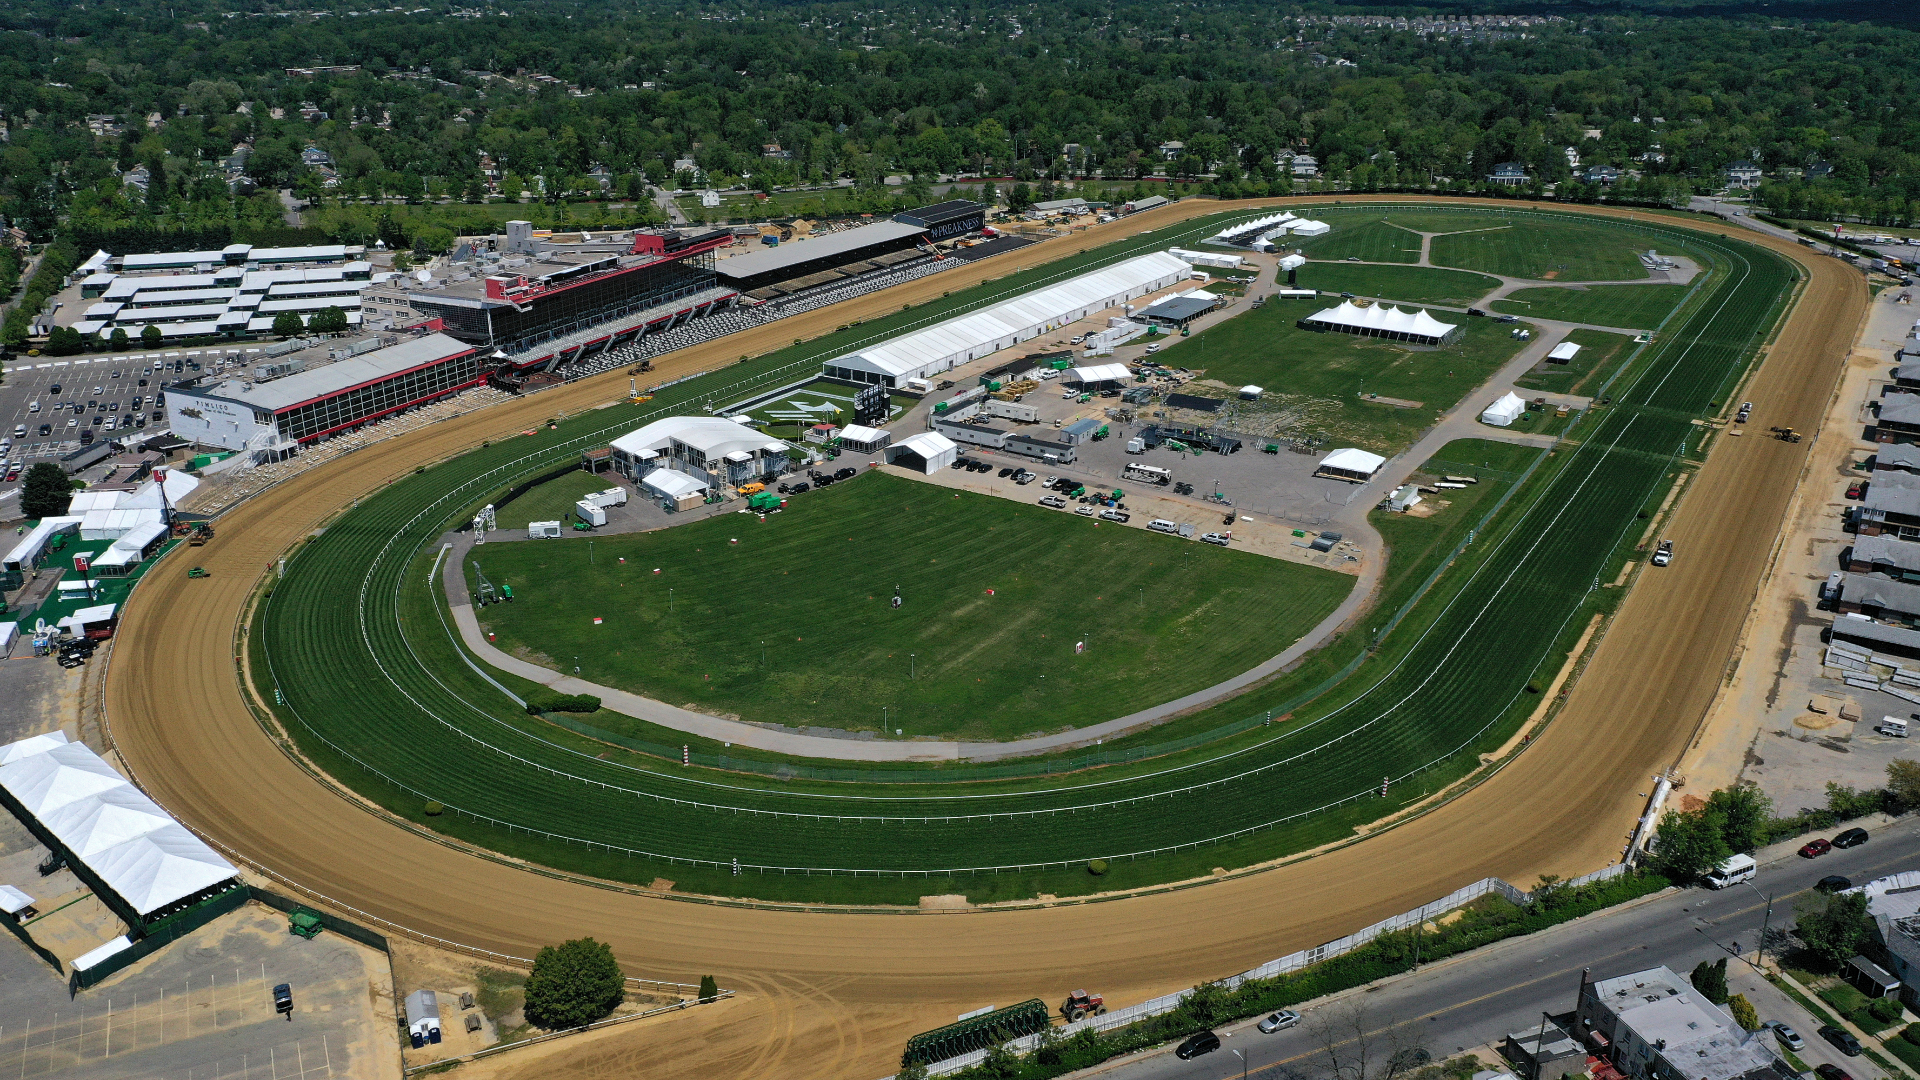 Preakness Stakes payout breakdown: how much money will the winner receive in 2021?